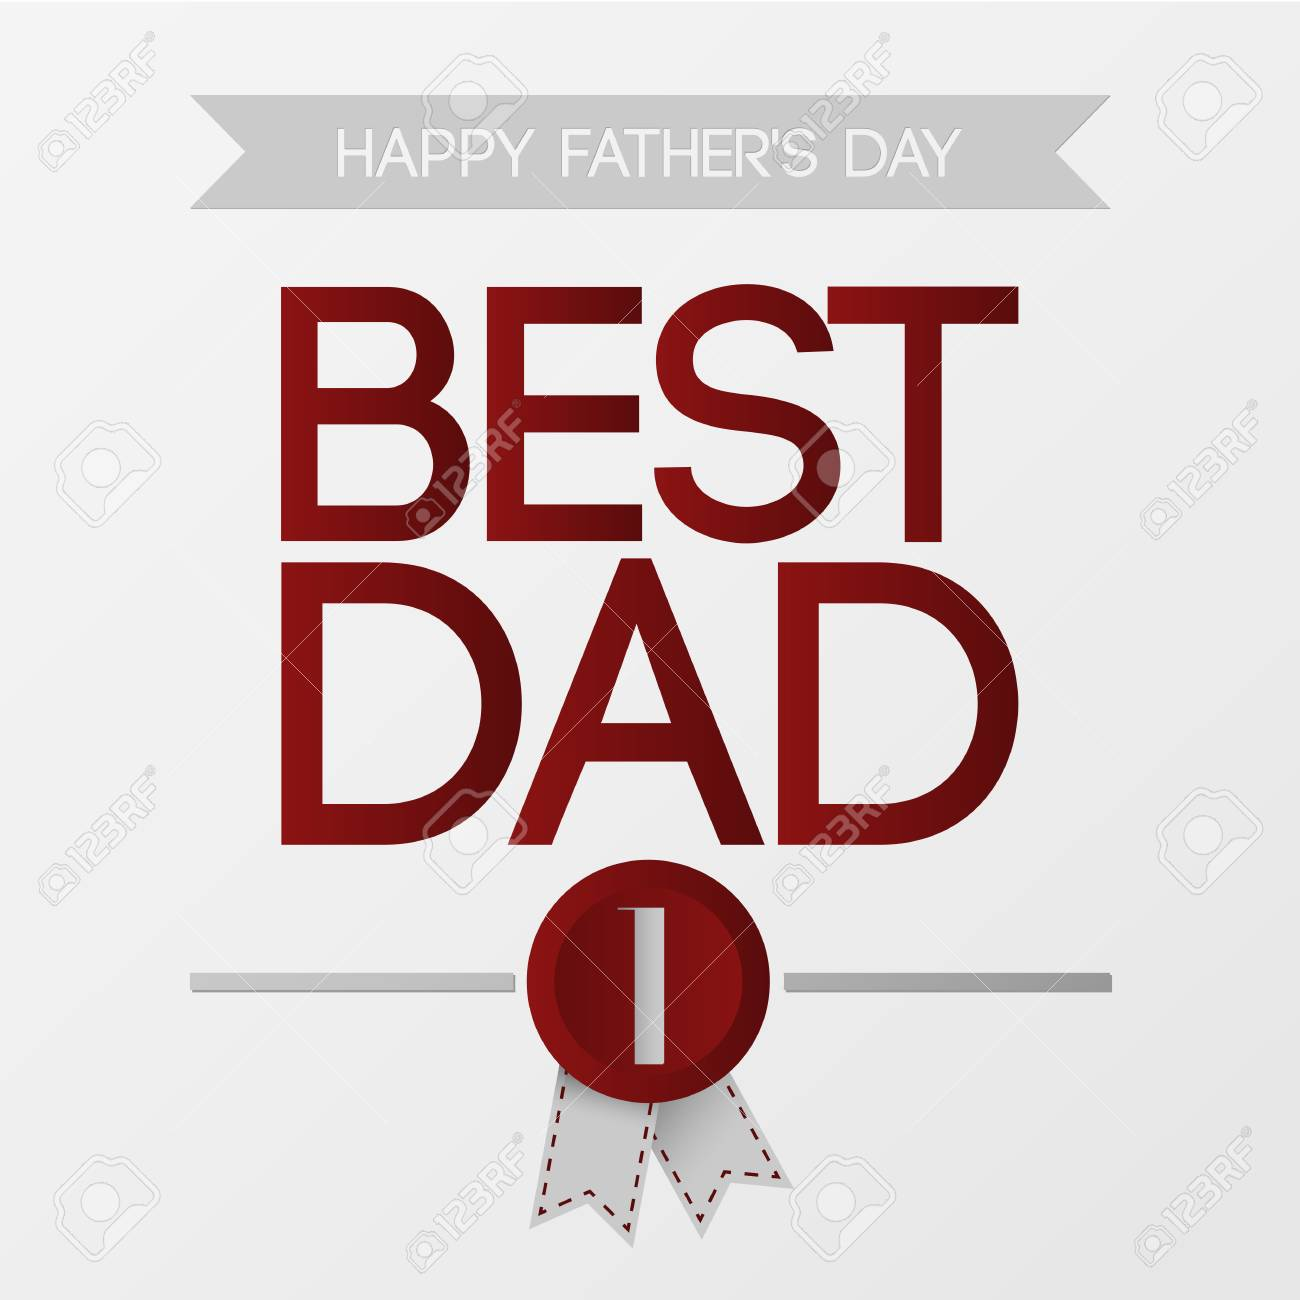 hight resolution of fathers day best dad vector illustration stock vector 58018447